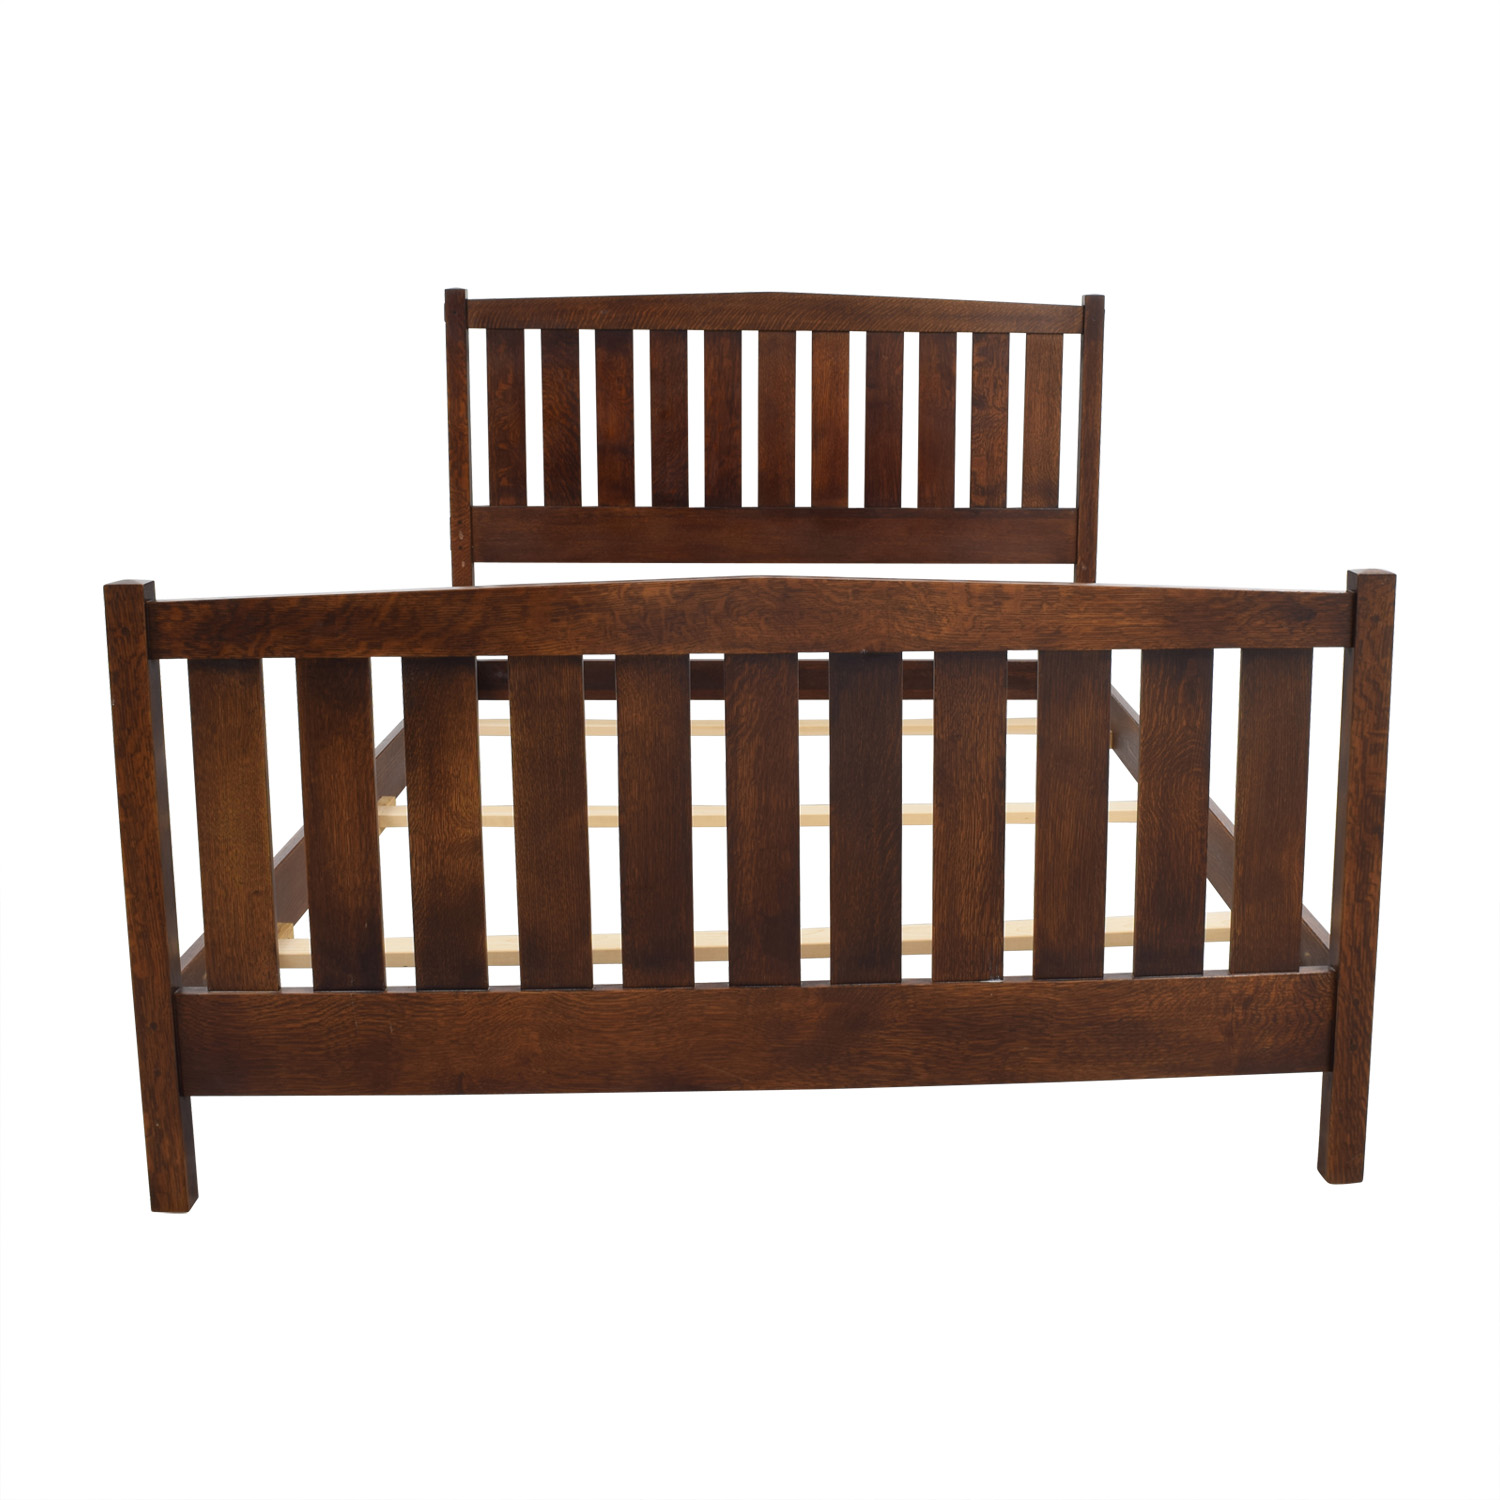 Stickley Mission Queen Bed Frame sale